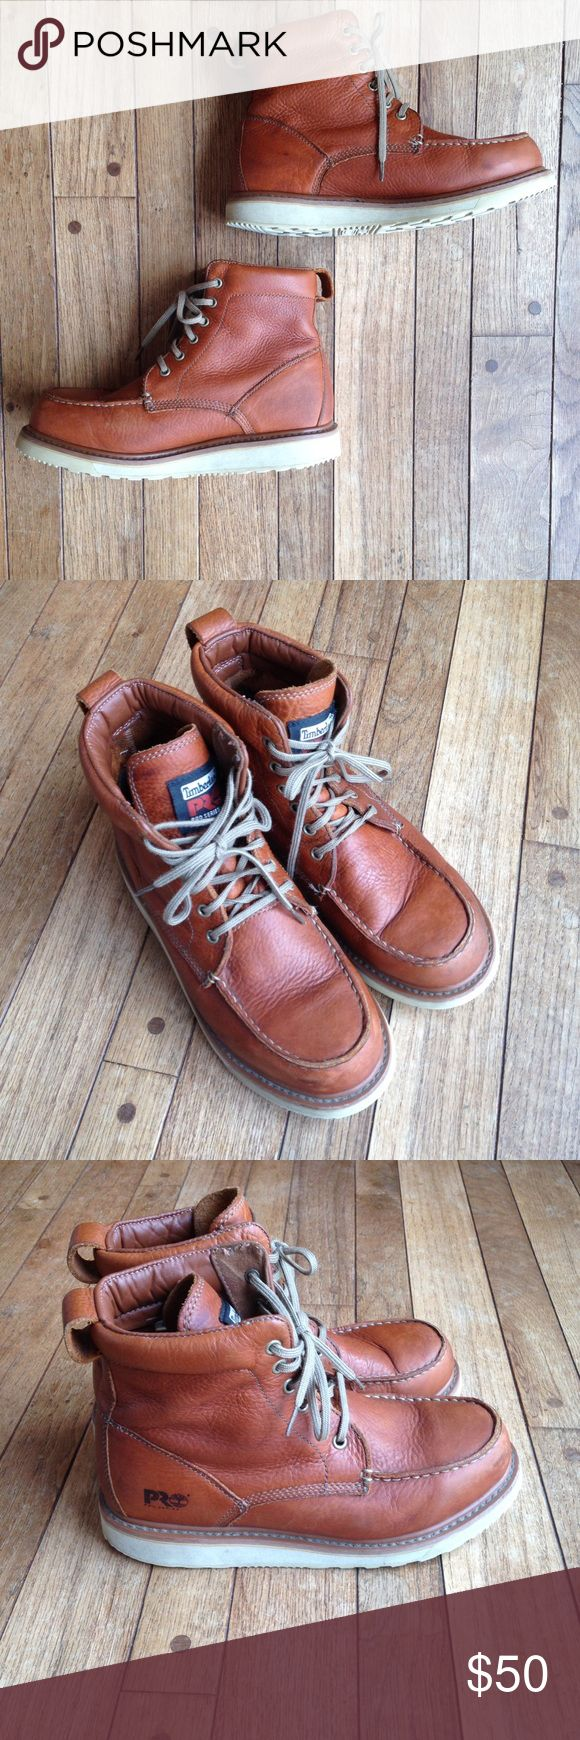 "Timberland Pro Series 6"" Leather soft-toed boots Rust brown colored. Full grain leather.  Lace up. VGUC. Soles are in EUC!  Leather has some scuffs and small scratches, but remains supple and soft. Insoles are in great condition! Timberland Shoes Boots"